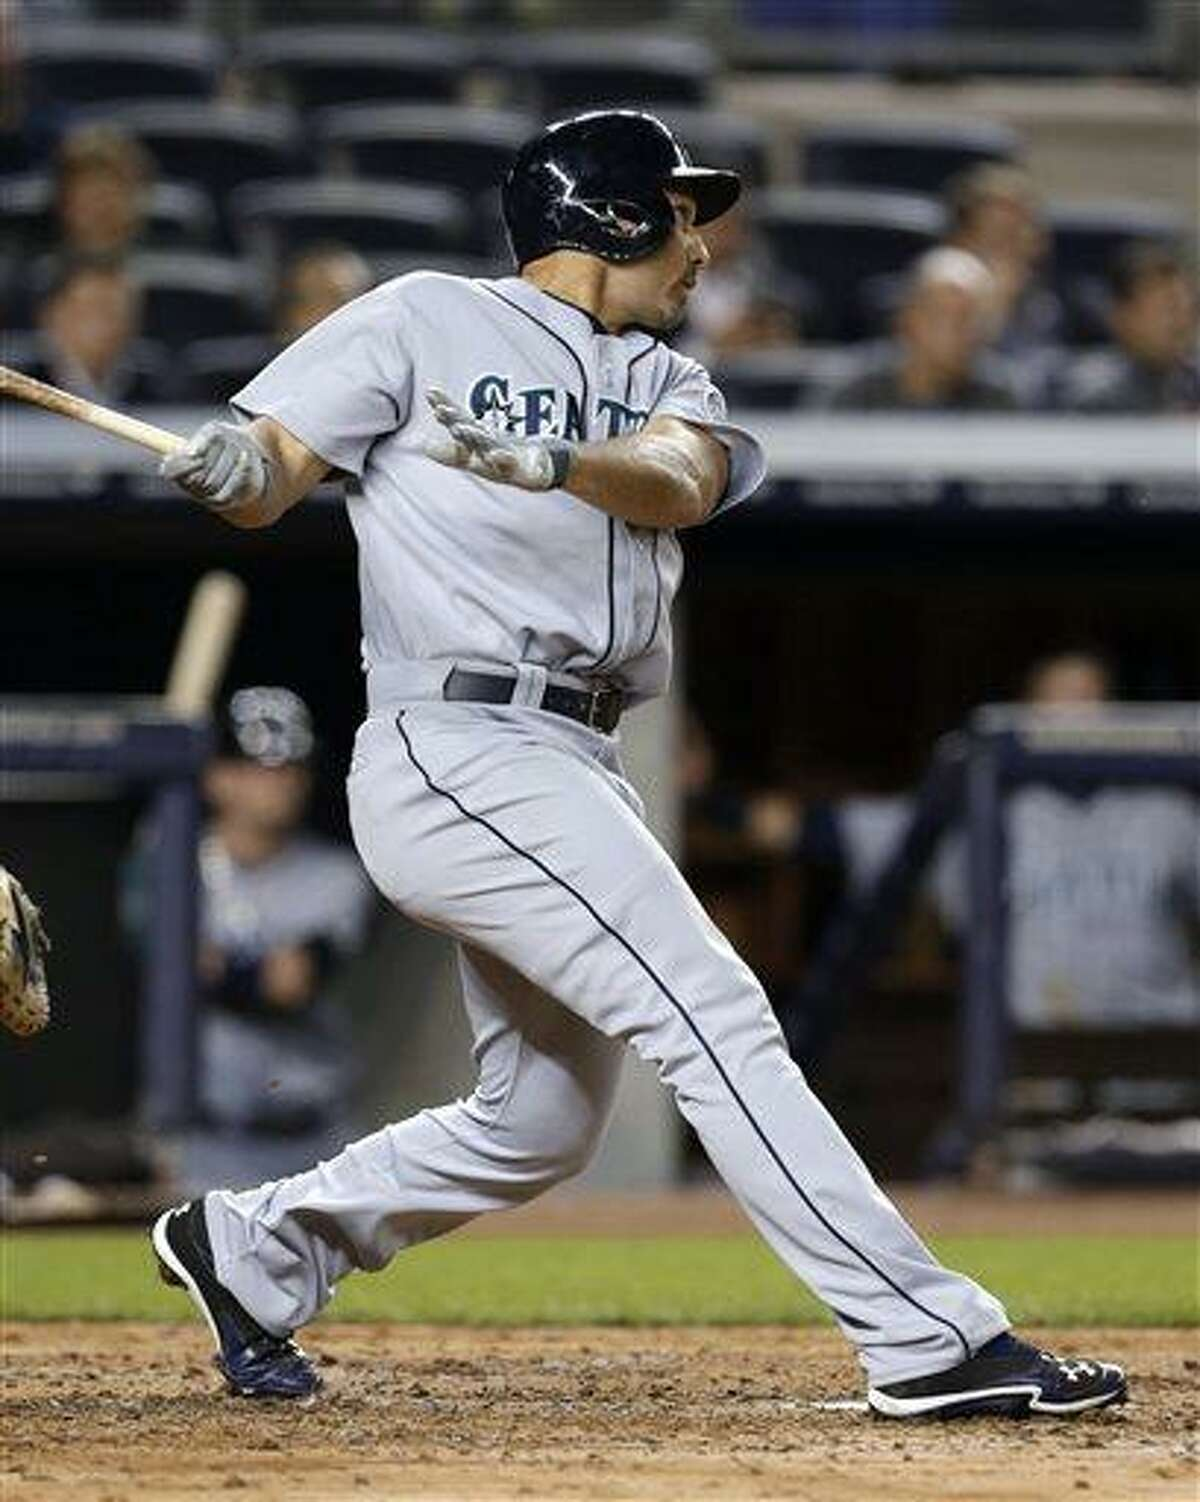 Seattle Mariners' Raul Ibanez watches his two-run home run off New York Yankees pitcher Brett Marshall during the fifth inning of a baseball game at Yankee Stadium in New York, Wednesday, May 15, 2013. (AP Photo/Julio Cortez)